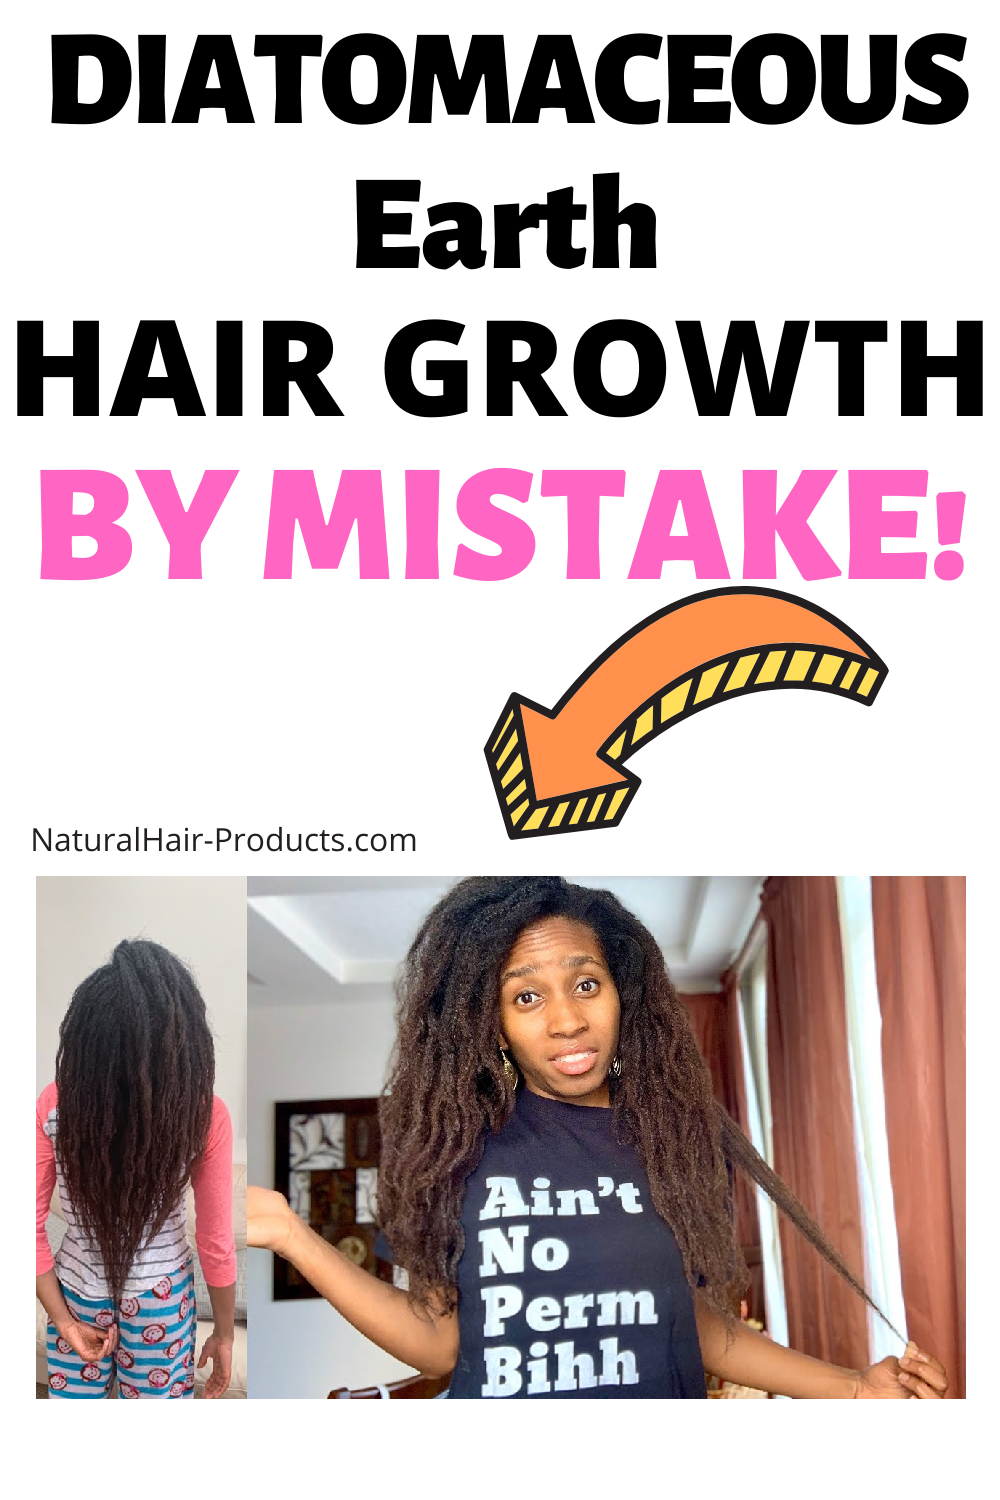 I wasn't even TRYING. Click to see my fast hair growth